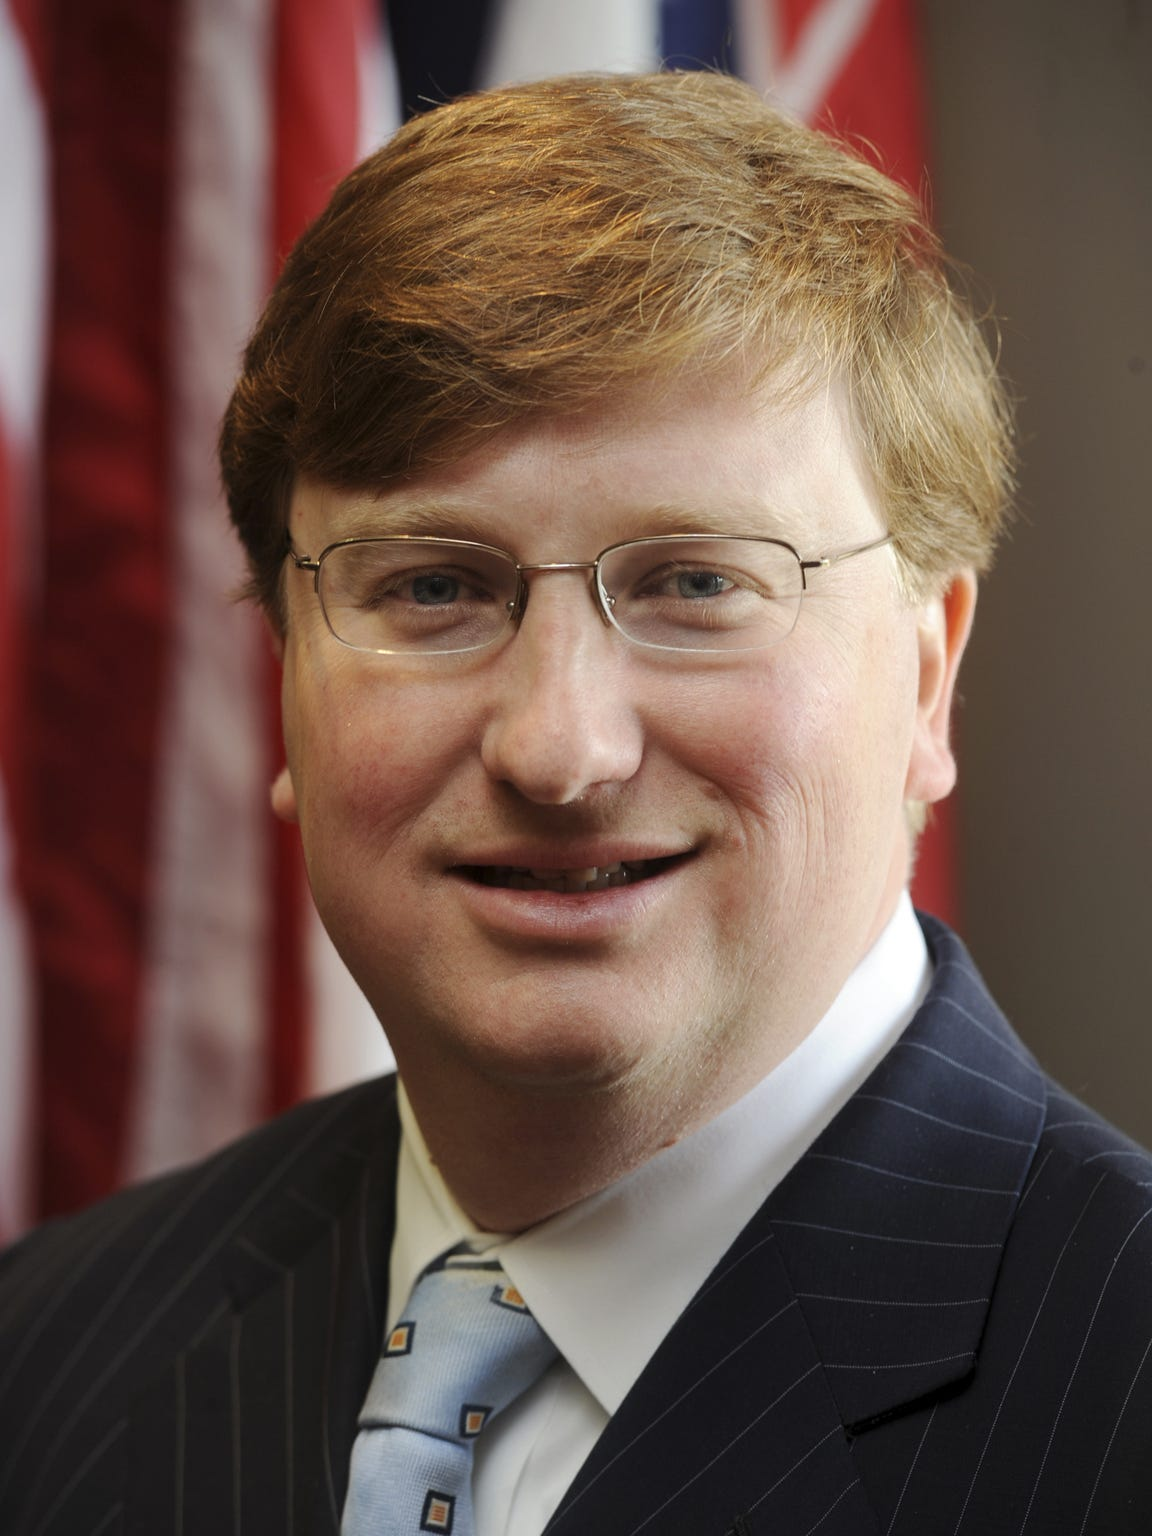 Lt. Gov. Tate Reeves is running for re-election.